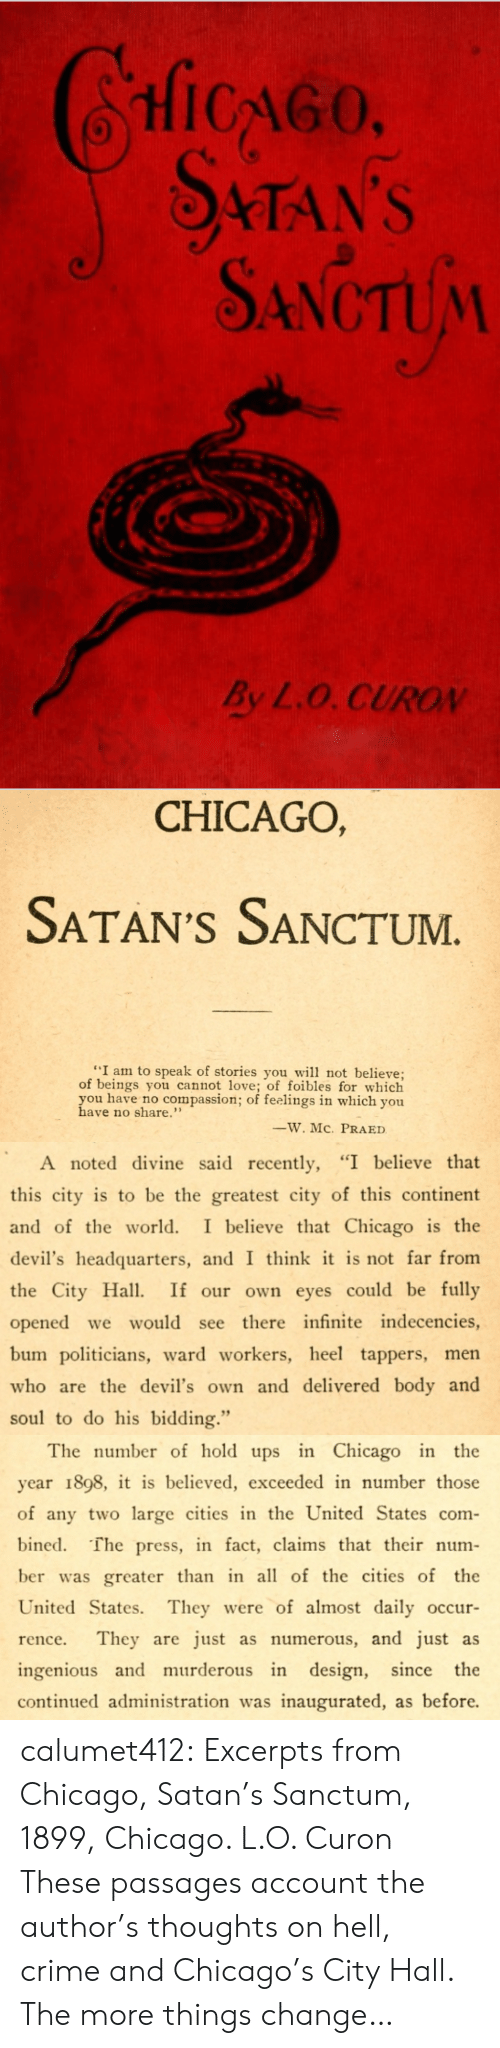 """murderous: HicGo  STAN'S  SANCTUM  By L.O. CUROV   CHICAGO,  SATAN'S SANCTUM  """"I am to speak of stories you w not believe;  of beings you cannot love; of foibles for which  you have no compassion; of feelings in which you  have no share.""""  ーW.MC.  PRA ED   A noted divine said recently, """"I believe that  this city is to be the greatest city of this continent  and of the world. I believe that Chicago is the  devil's headquarters, and I think it is not far from  the City Ha If our own eyes could be fully  opened we would see there infinite indecencies,  bum politicians, ward workers, heel tappers, men  who are the devil's own and delivered body and  soul to do his bidding.""""   The number of hold ups in Chicago in the  year 1898, it is believed, exceeded in number those  of any two large cities in the United States com-  bined. The press, in fact, claims that their num-  ber was greater than in all of the cities of the  United States. They were of almost daily occur  rence. They are just as numerous, and just as  ingenious and murderous in design, since the  continued administration was inaugurated, as before. calumet412:  Excerpts from Chicago, Satan's Sanctum, 1899, Chicago. L.O. Curon These passages account the author's thoughts on hell, crime and Chicago's City Hall. The more things change…"""